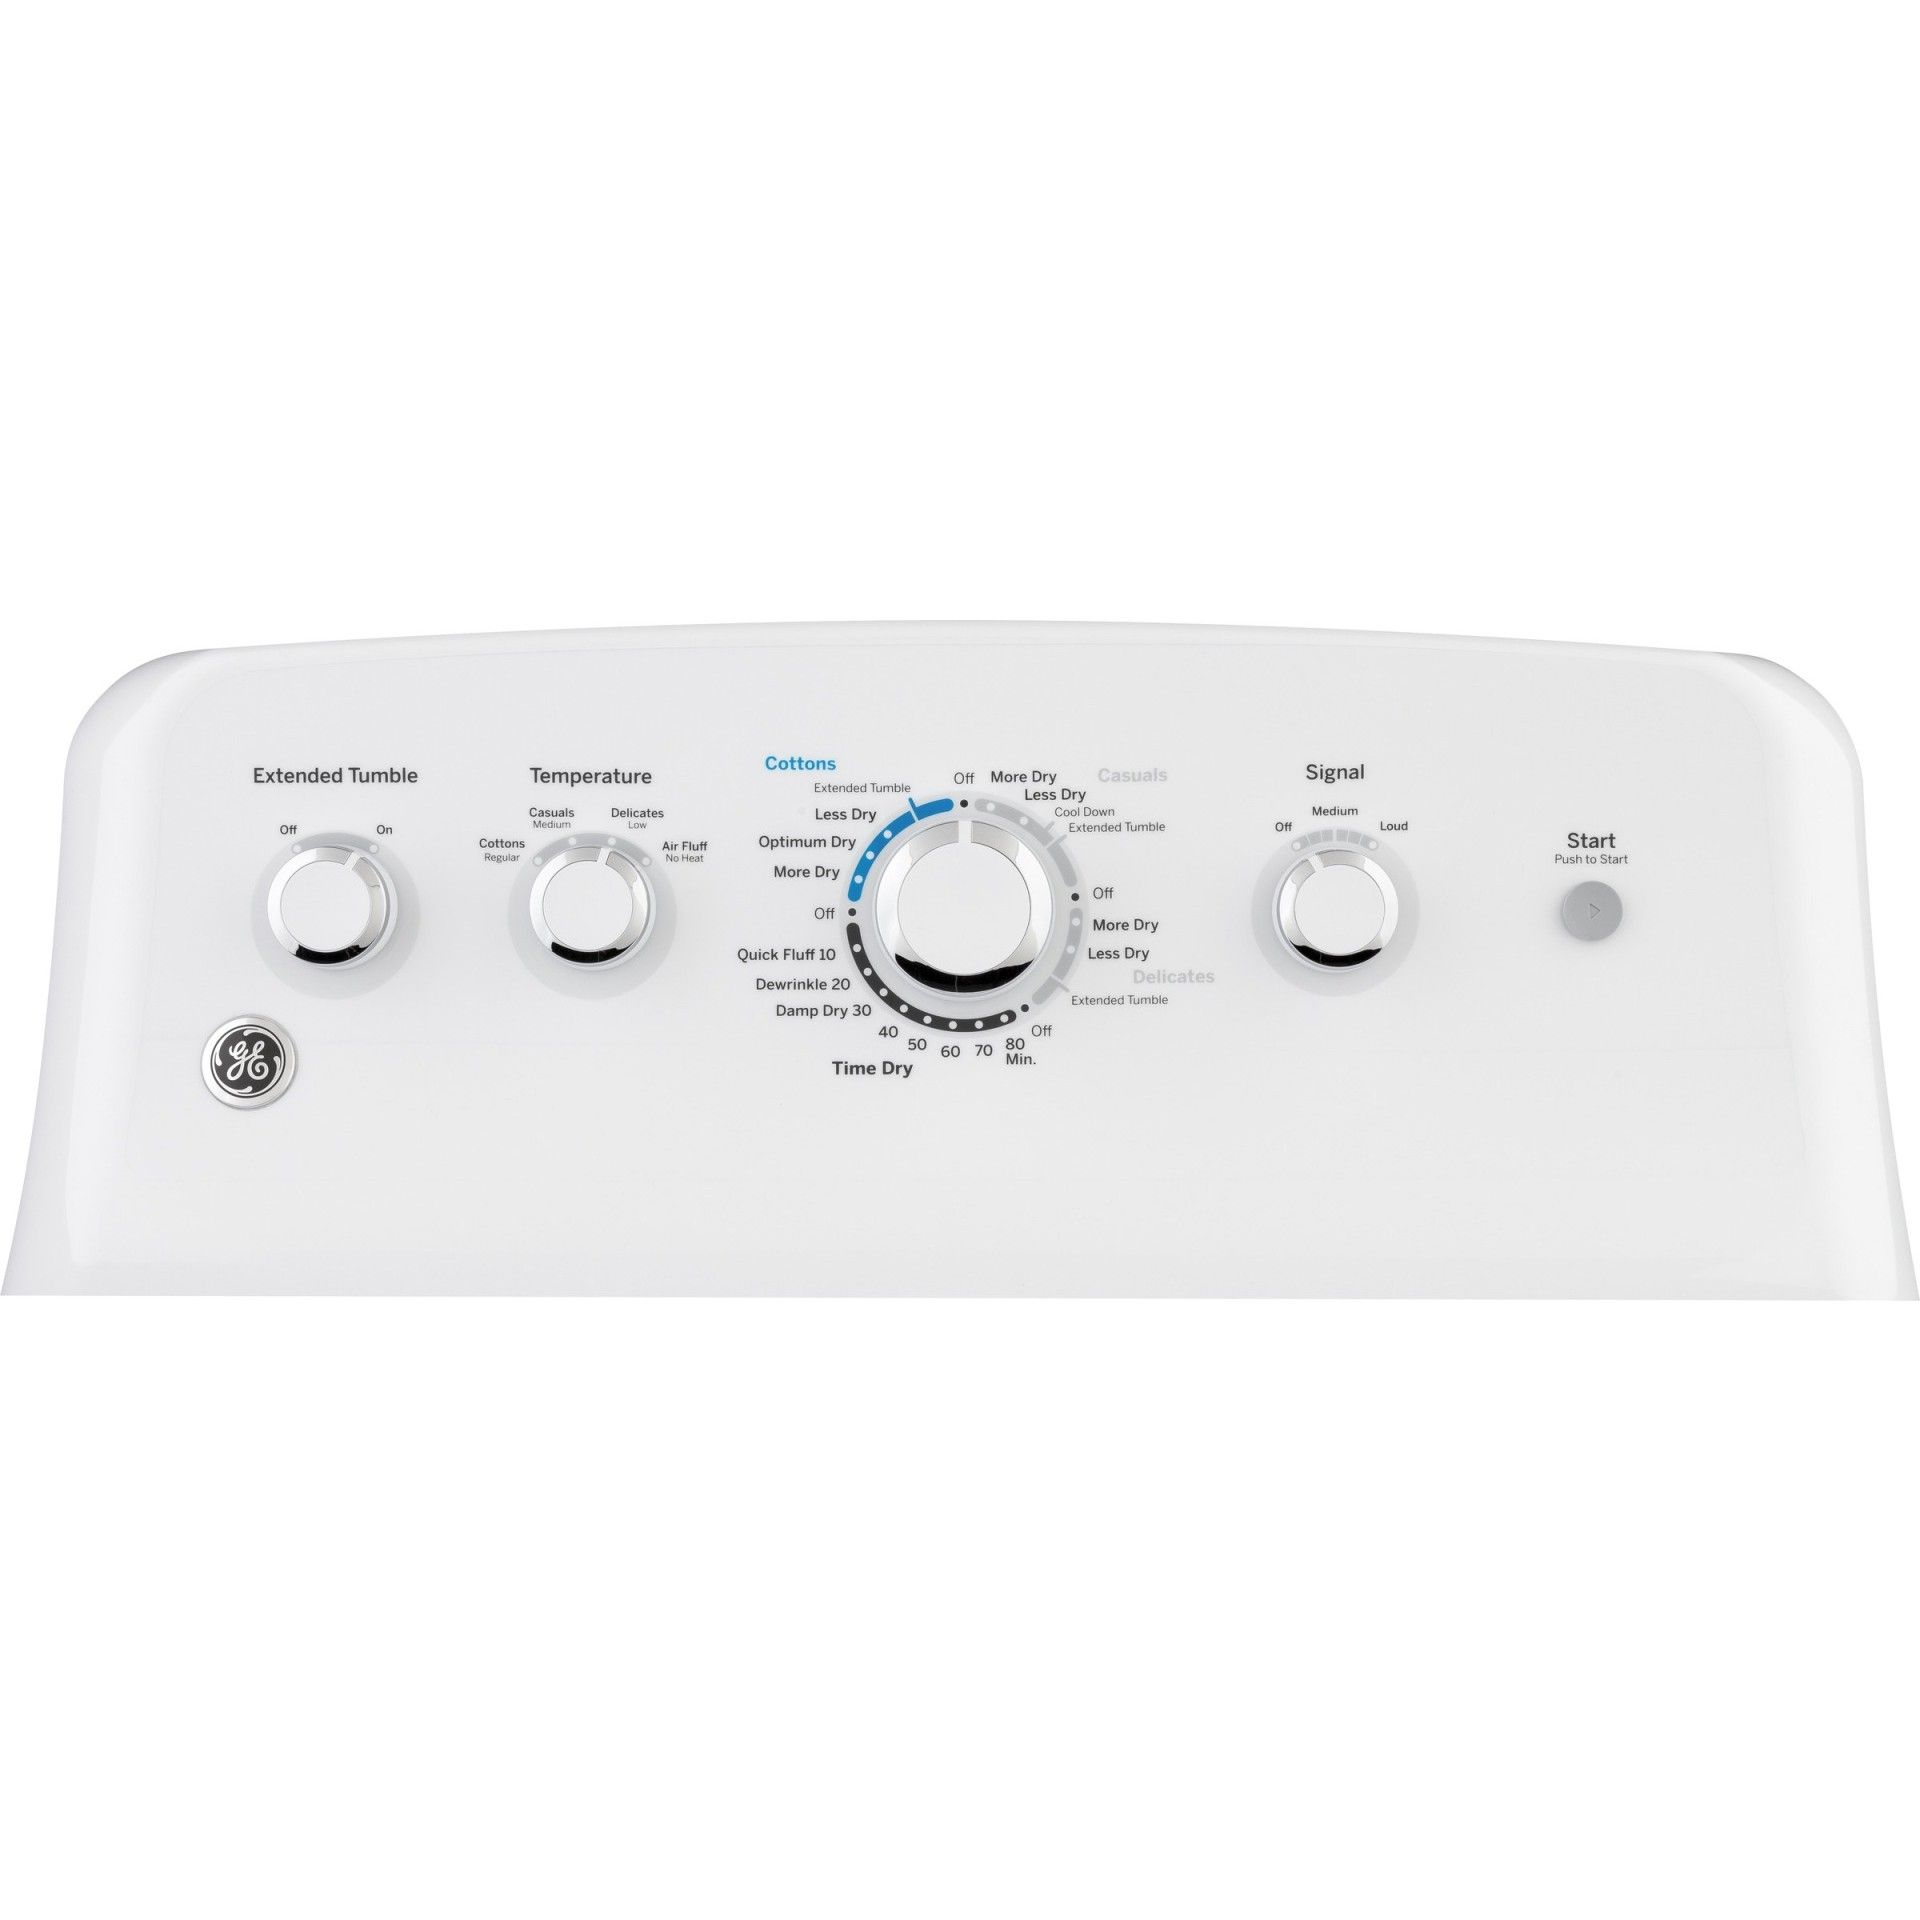 "GE GTD42EASJWW  27"" Electric Dryer with 7.2 cu. ft. Capacity, 4 Dry Cycles, 4 Temperature Settings, in White"